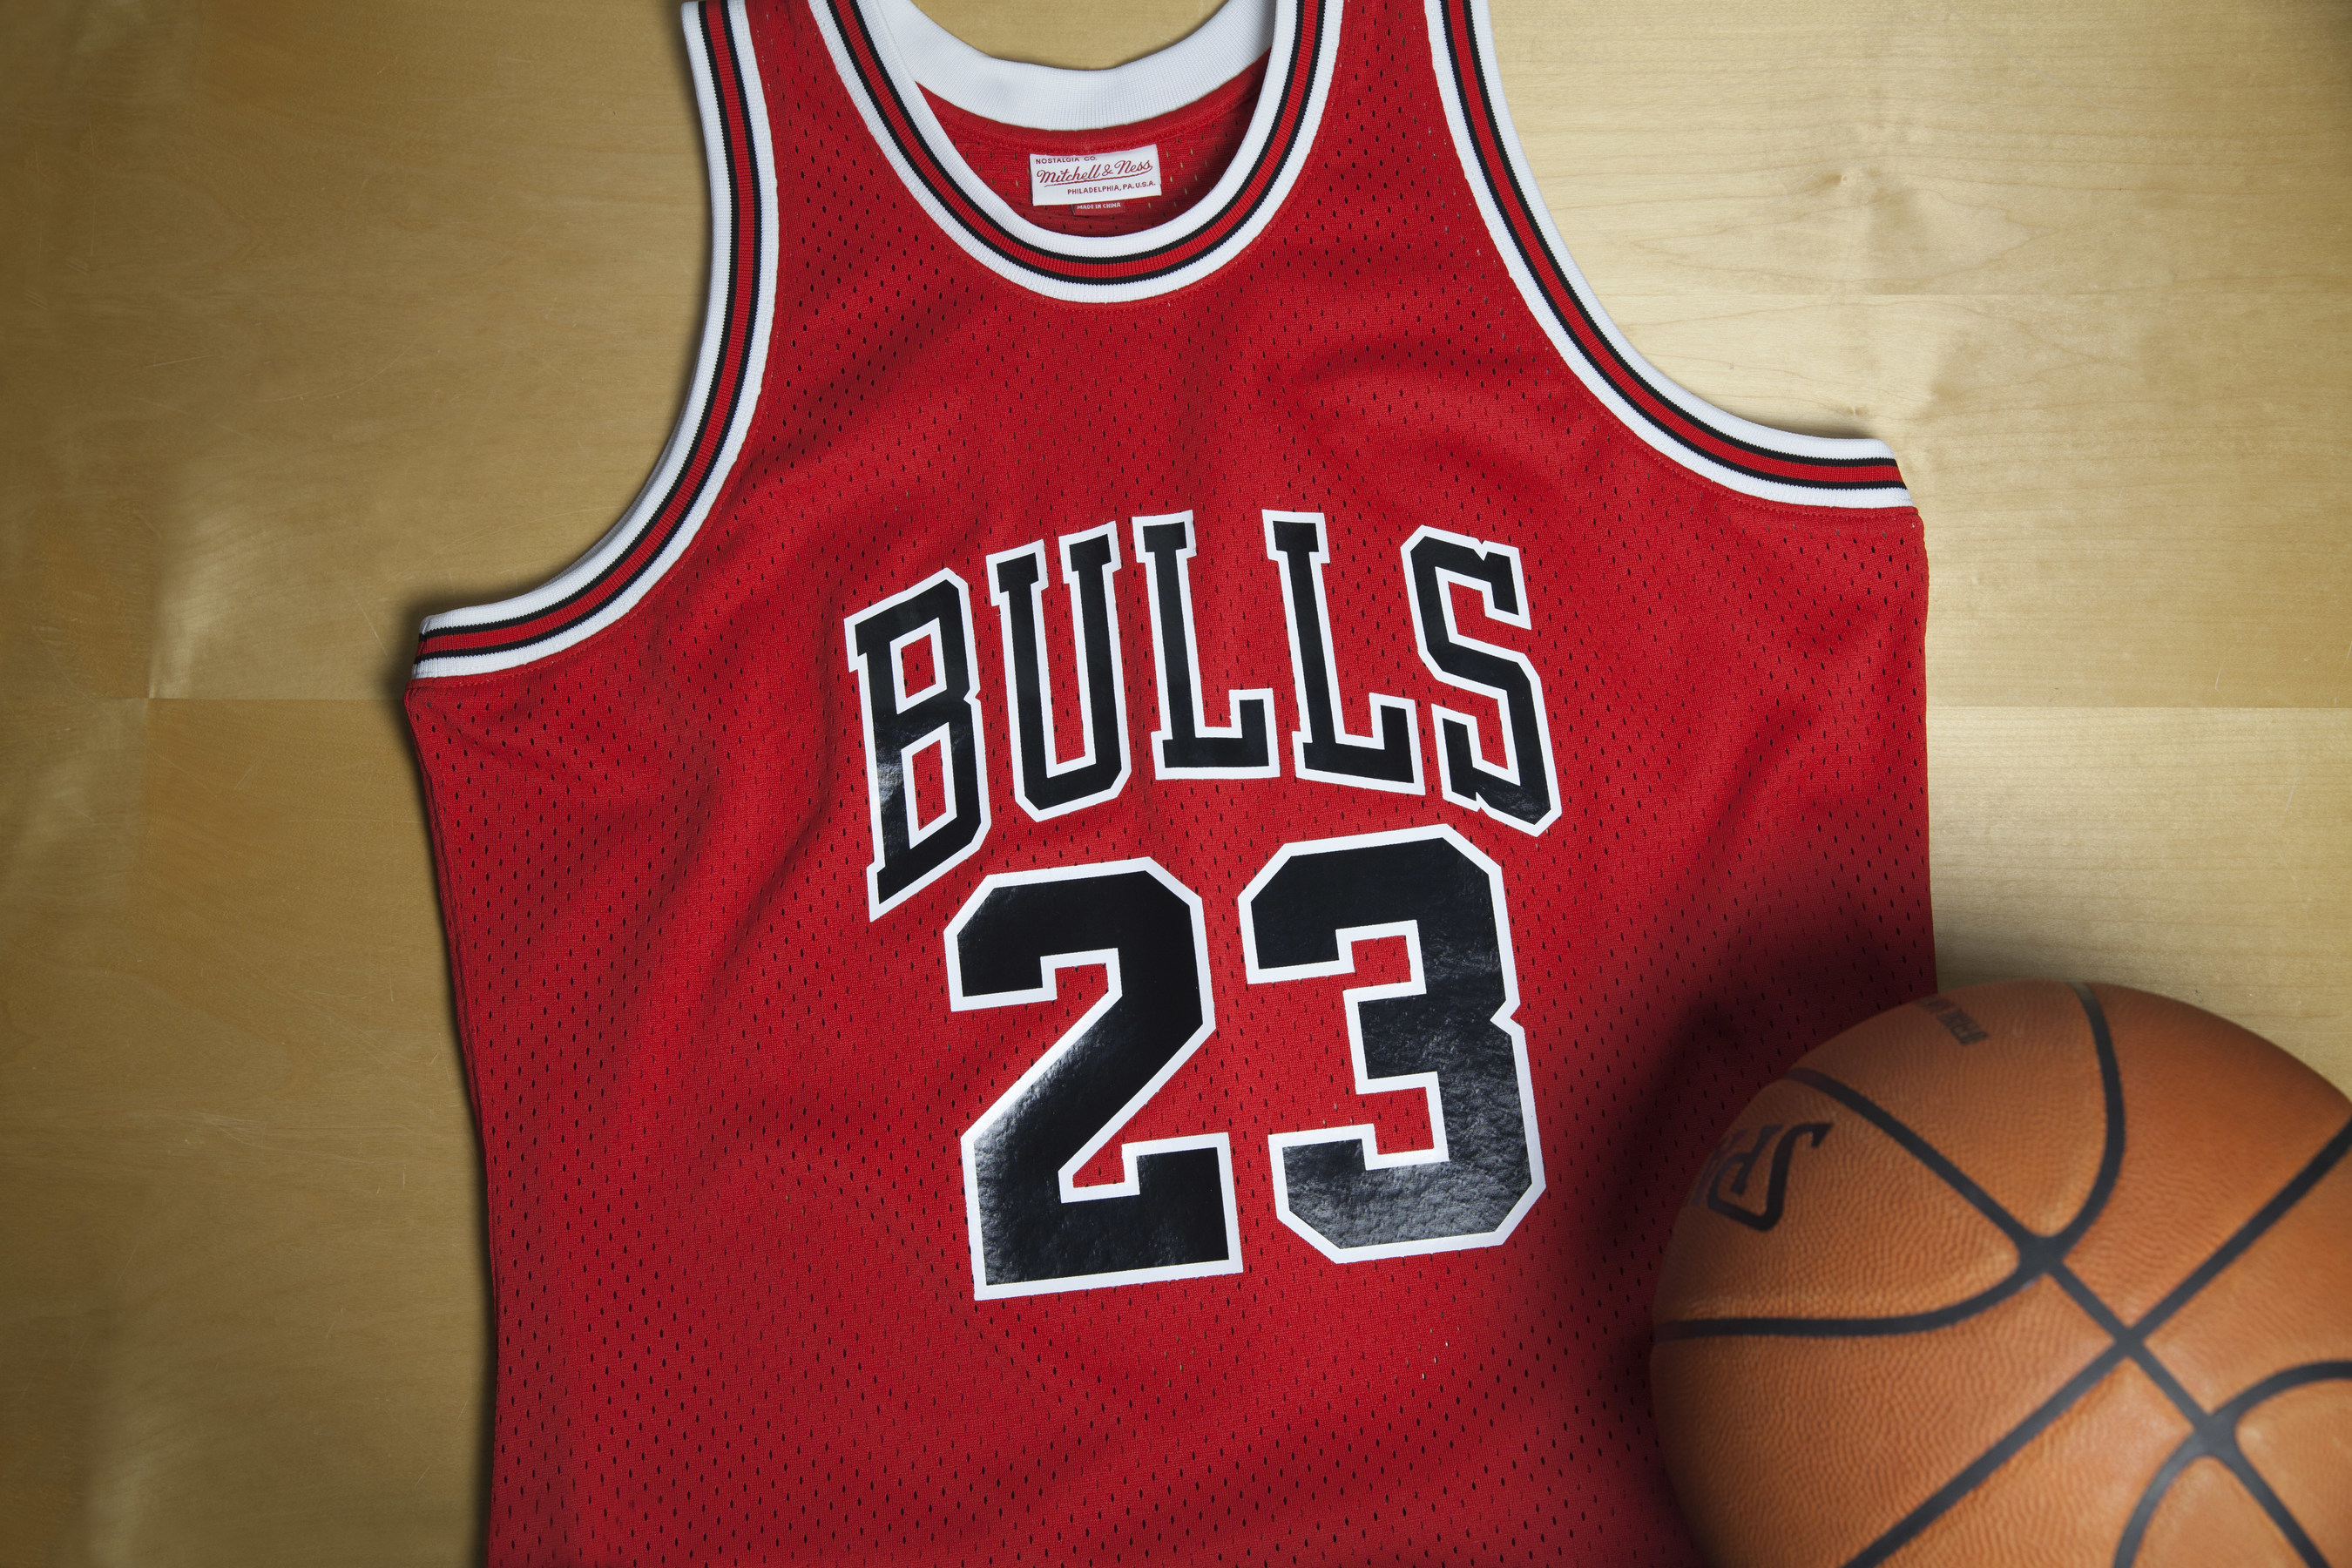 a2350604d Mitchell   Ness Releases 1985-86 Michael Jordan 63-Point Playoff ...